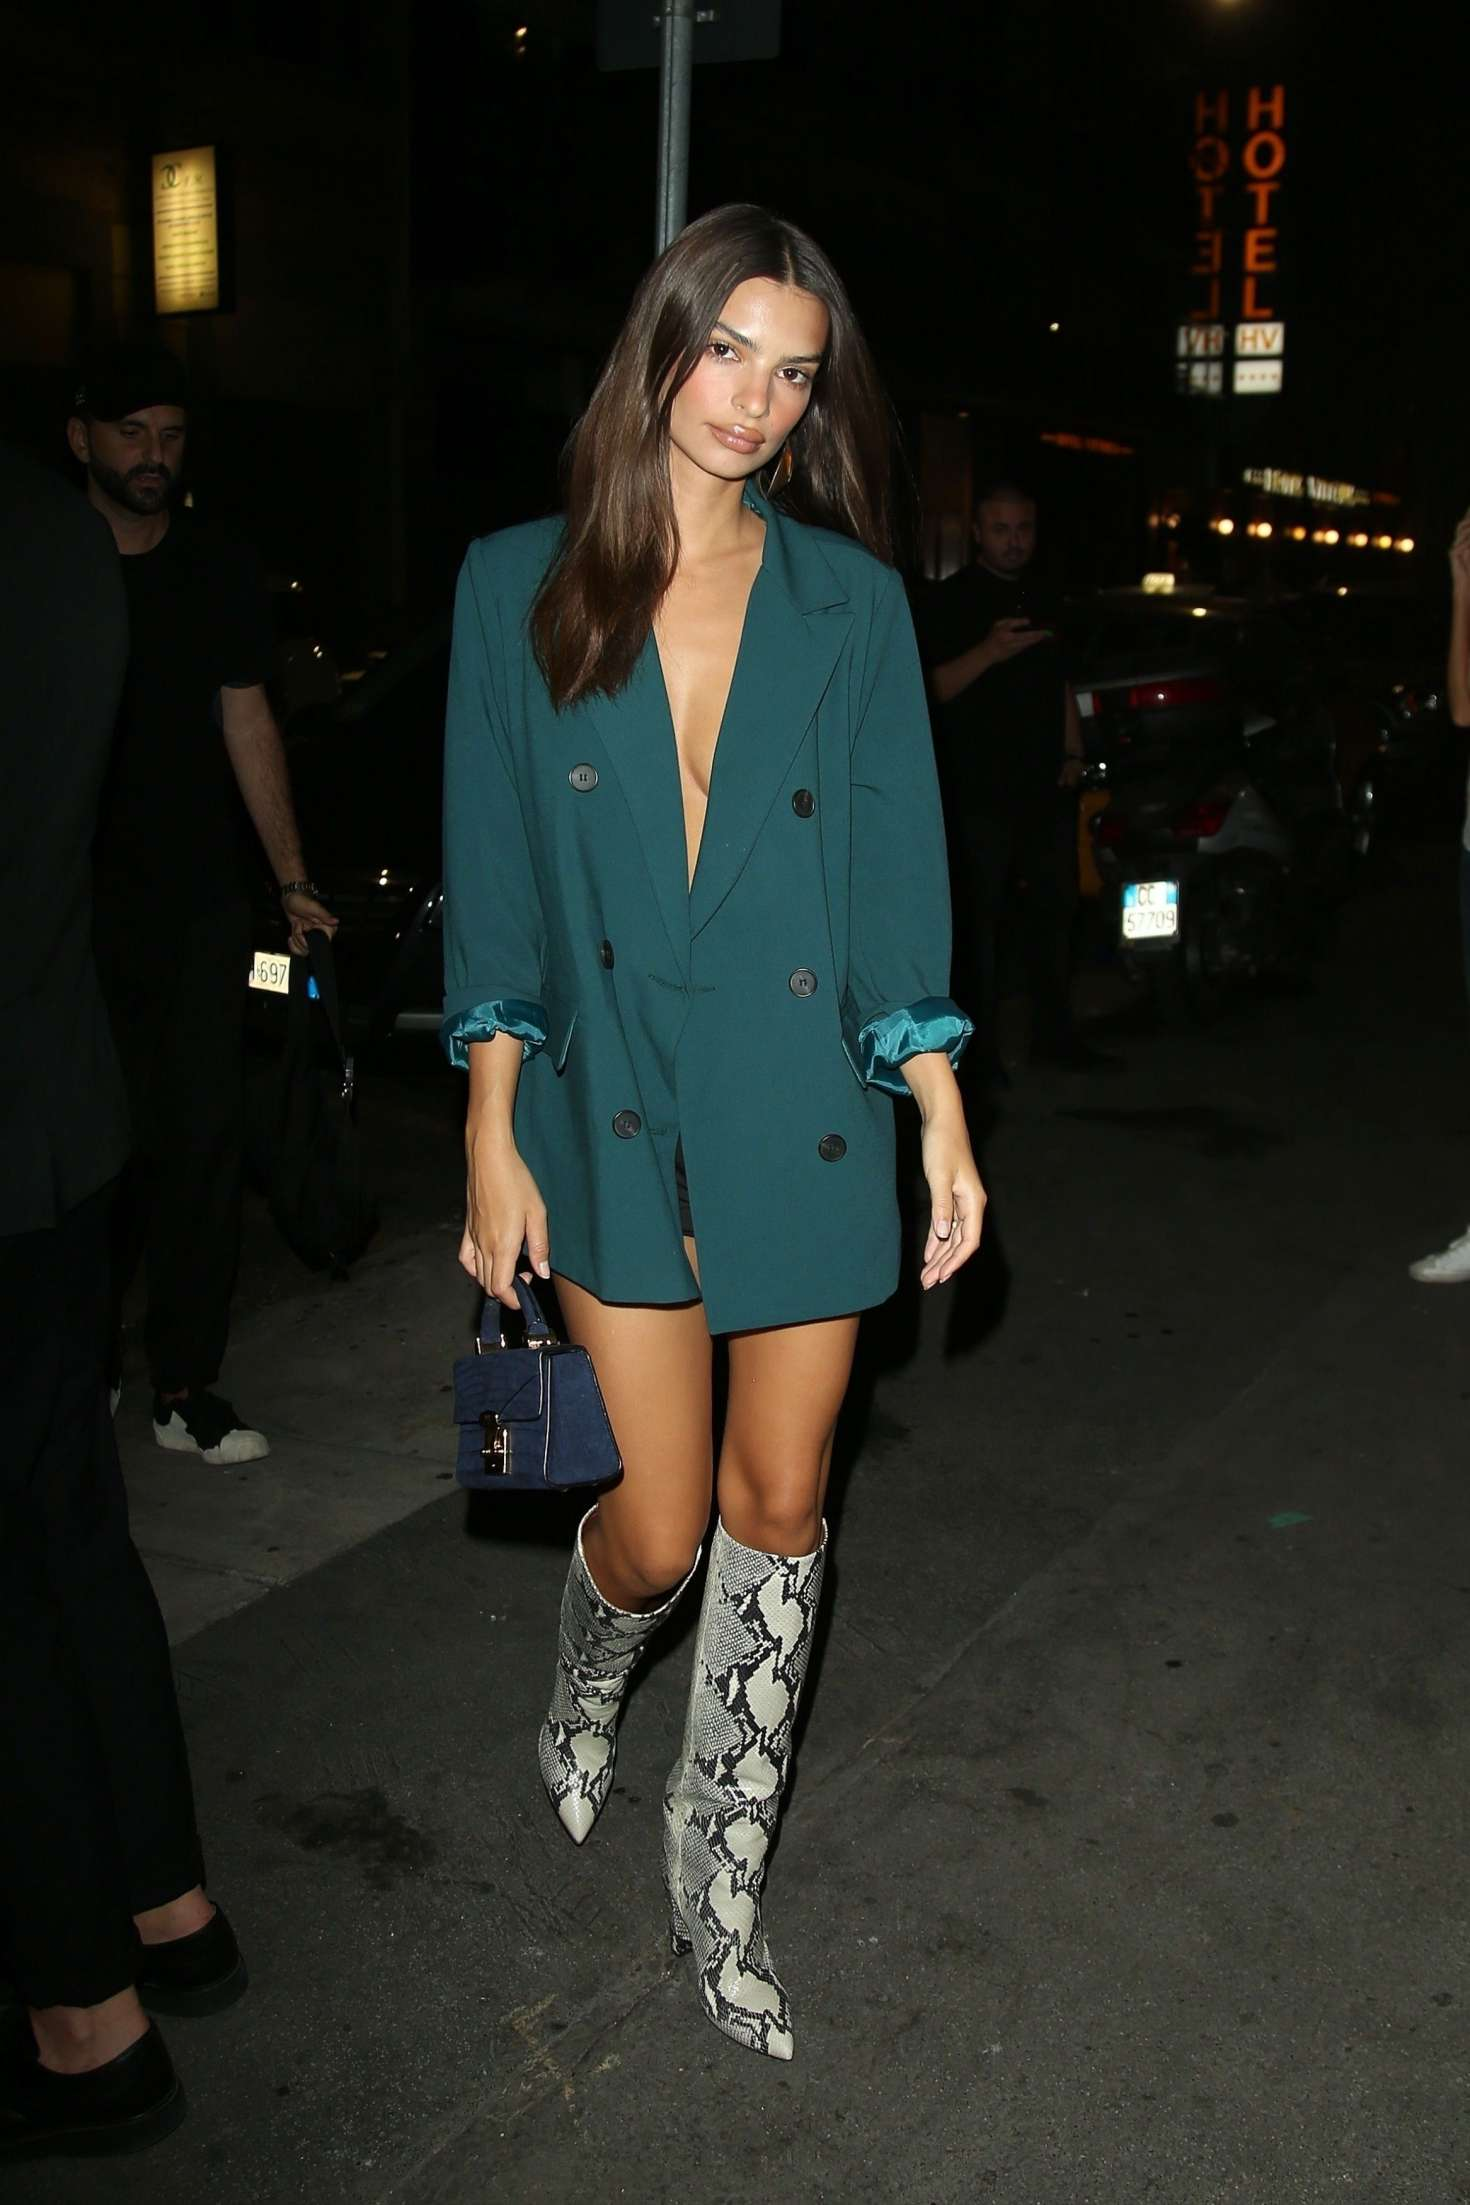 Emily Ratajkowski – Night Out in Milan